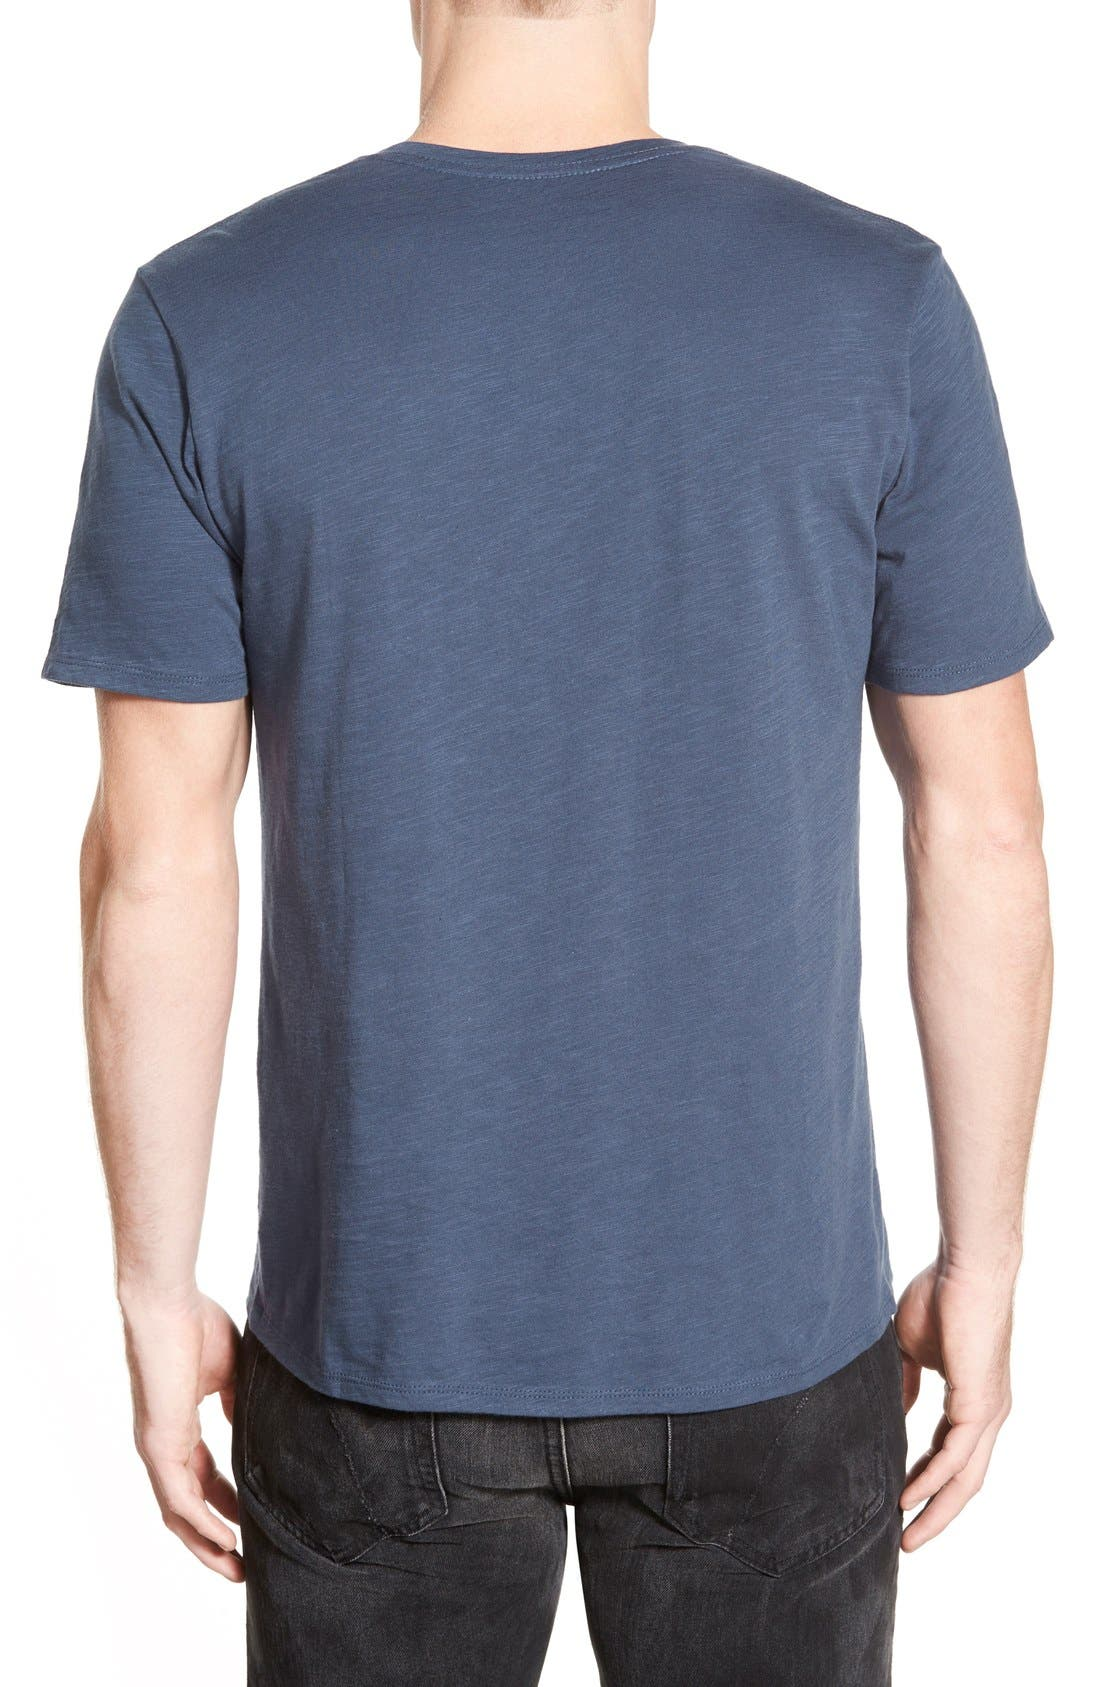 Alternate Image 2  - The Rail Slub Cotton V-Neck T-Shirt